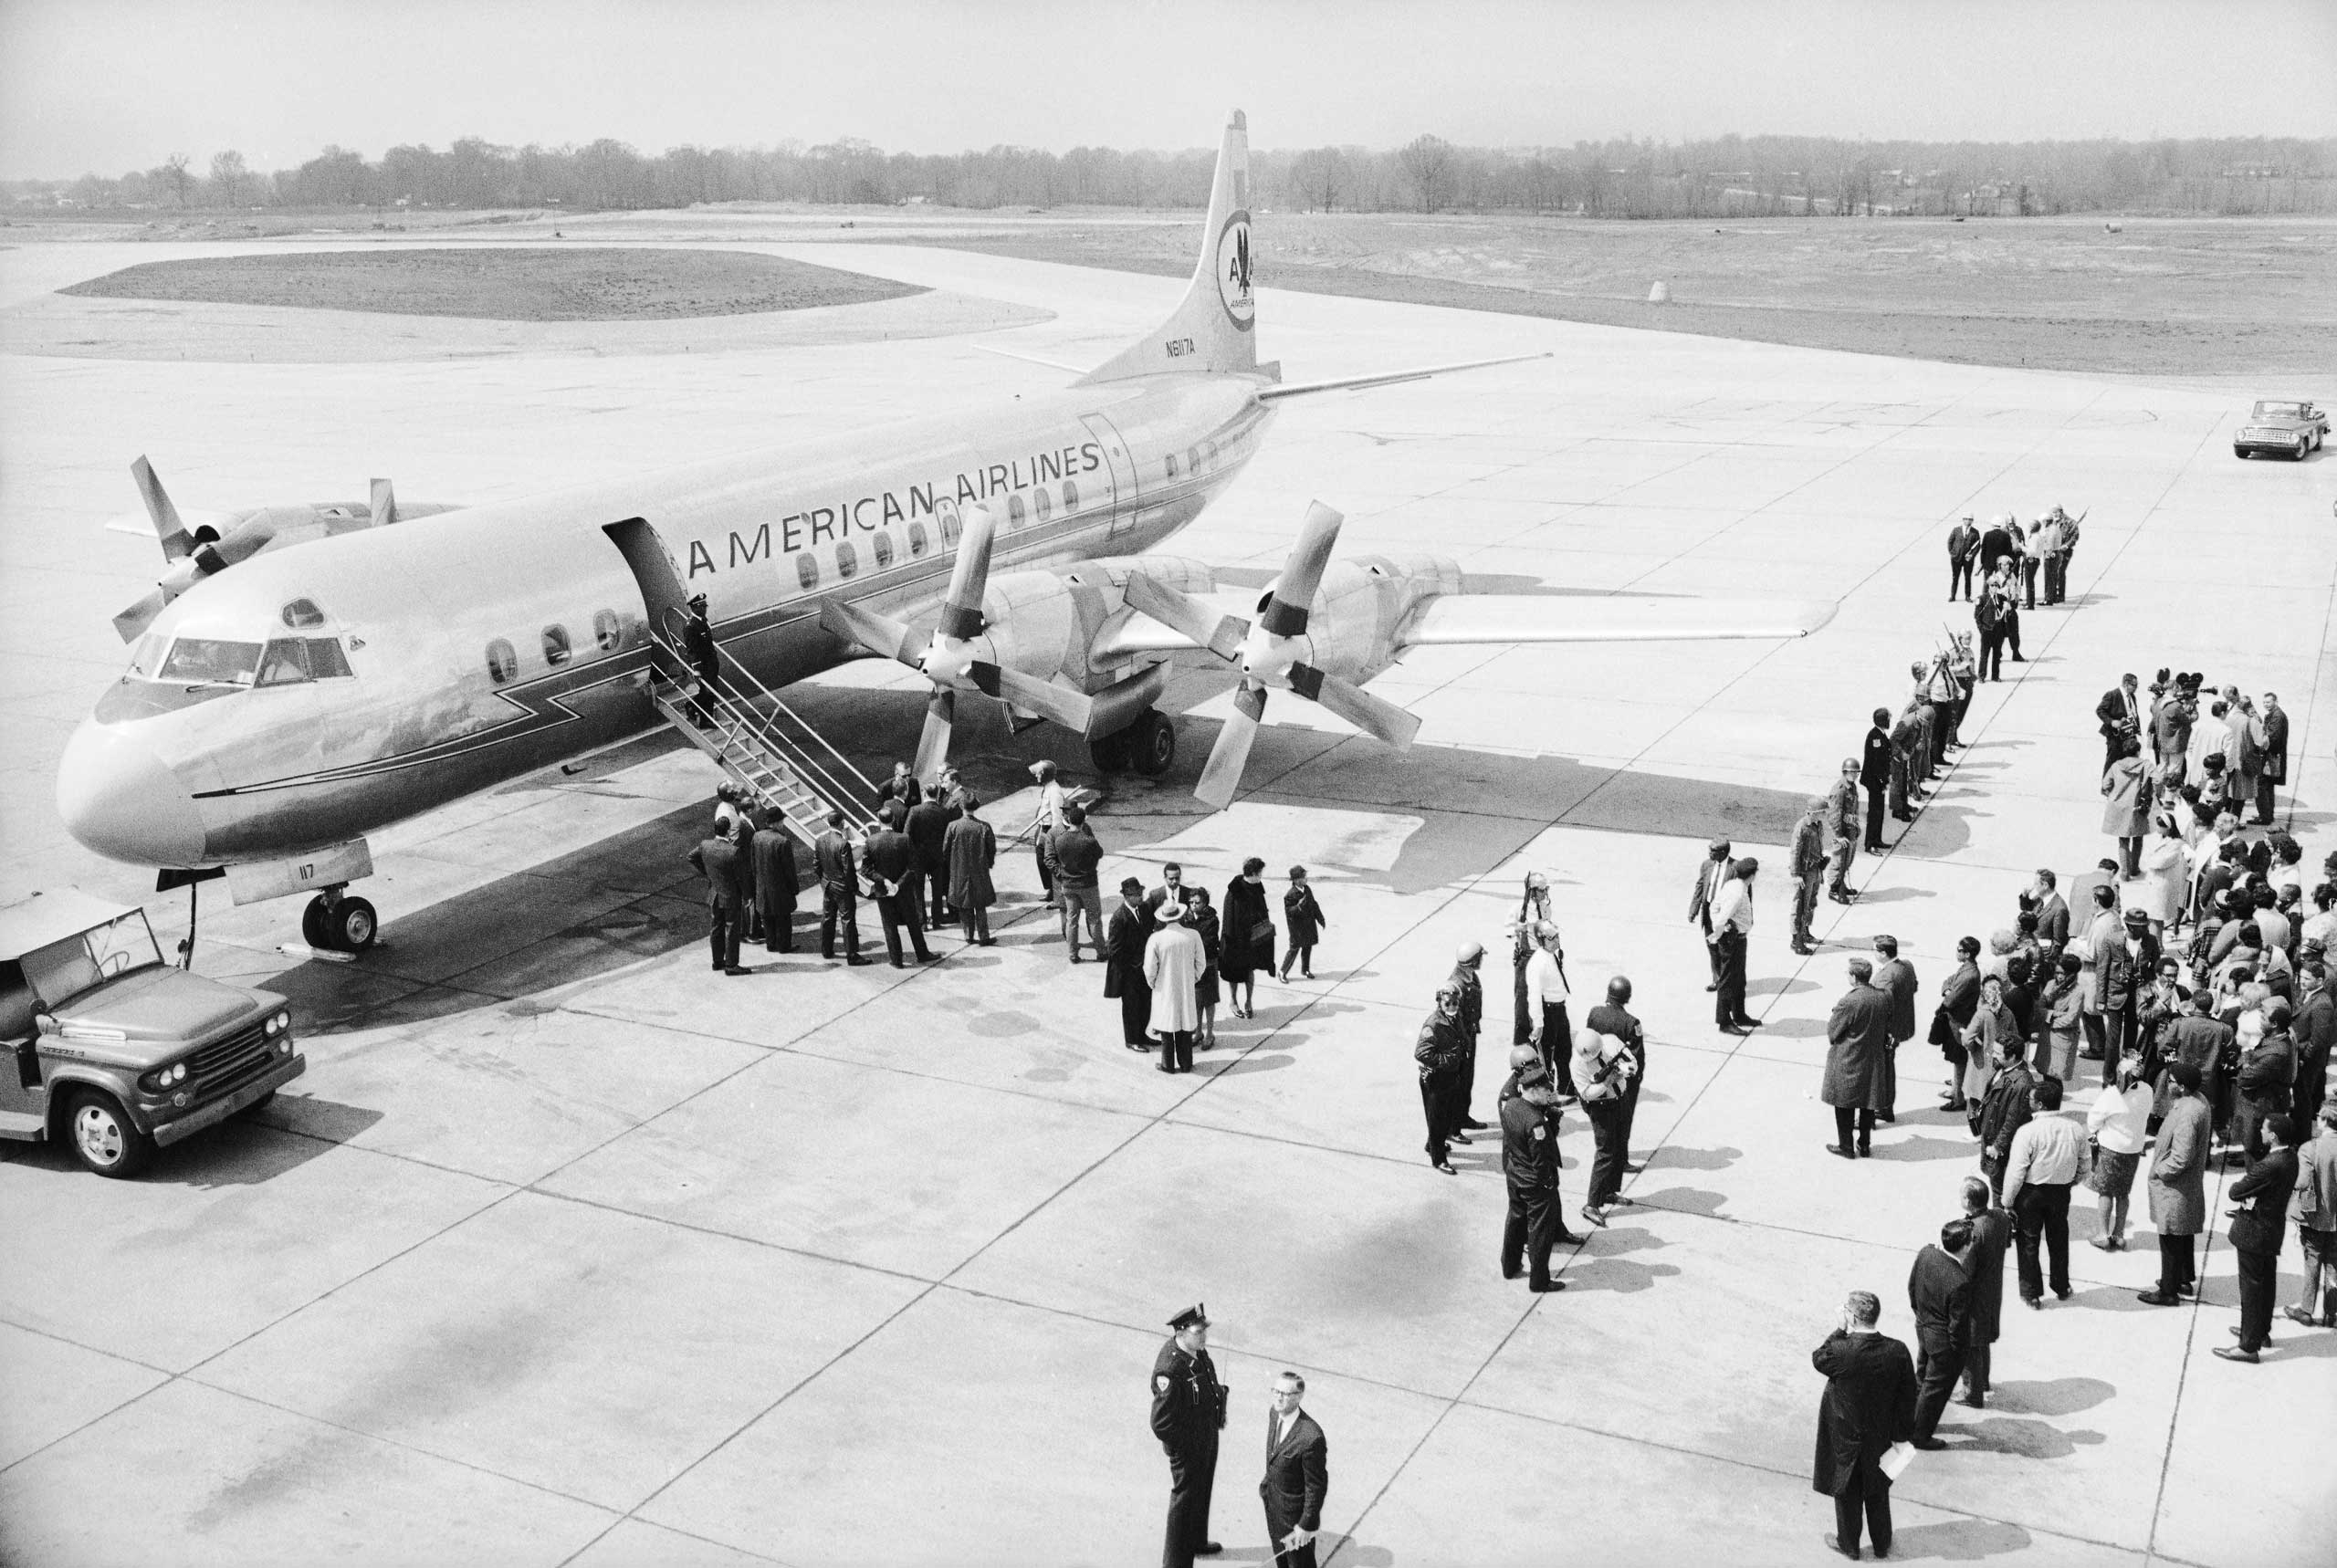 """<b>Not published in LIFE.</b> An airplane dispatched by the U.S. government to retrieve Dr. King's body and return it to Atlanta, Ga., waits on the tarmac in Memphis, Tenn., the day after MLK's assassination. """"Here we were, two white guys in the Deep South right after the murder of the preeminent leader of the black community — voyeurs, in a sense,"""" Groskinsky remembers. """"We were apprehensive about it. But when we got there, there were no big problems for us."""""""